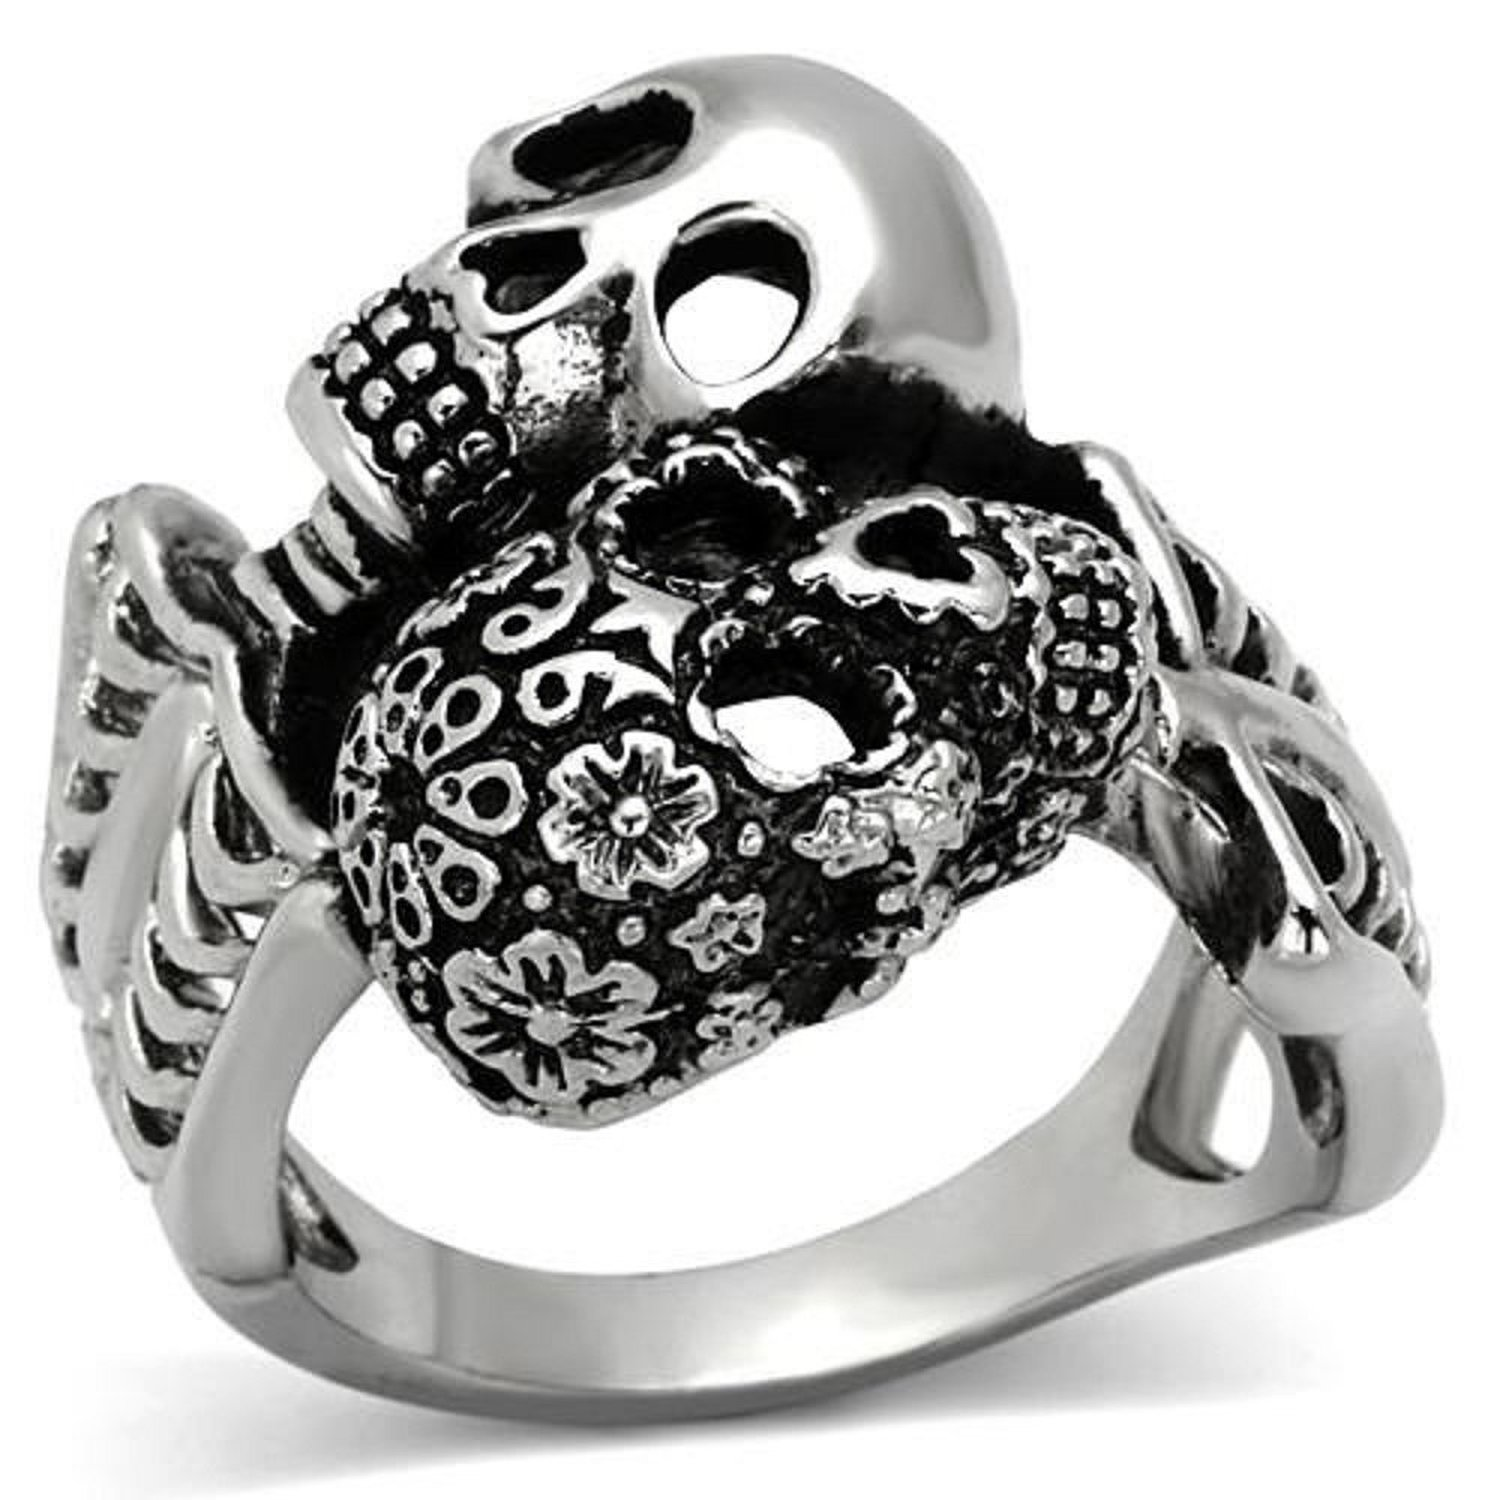 Amazon.com: Men's Stainless Steel Day of the Dead Skelton Duo Wrap Ring - Sizes 8-13: Jewelry